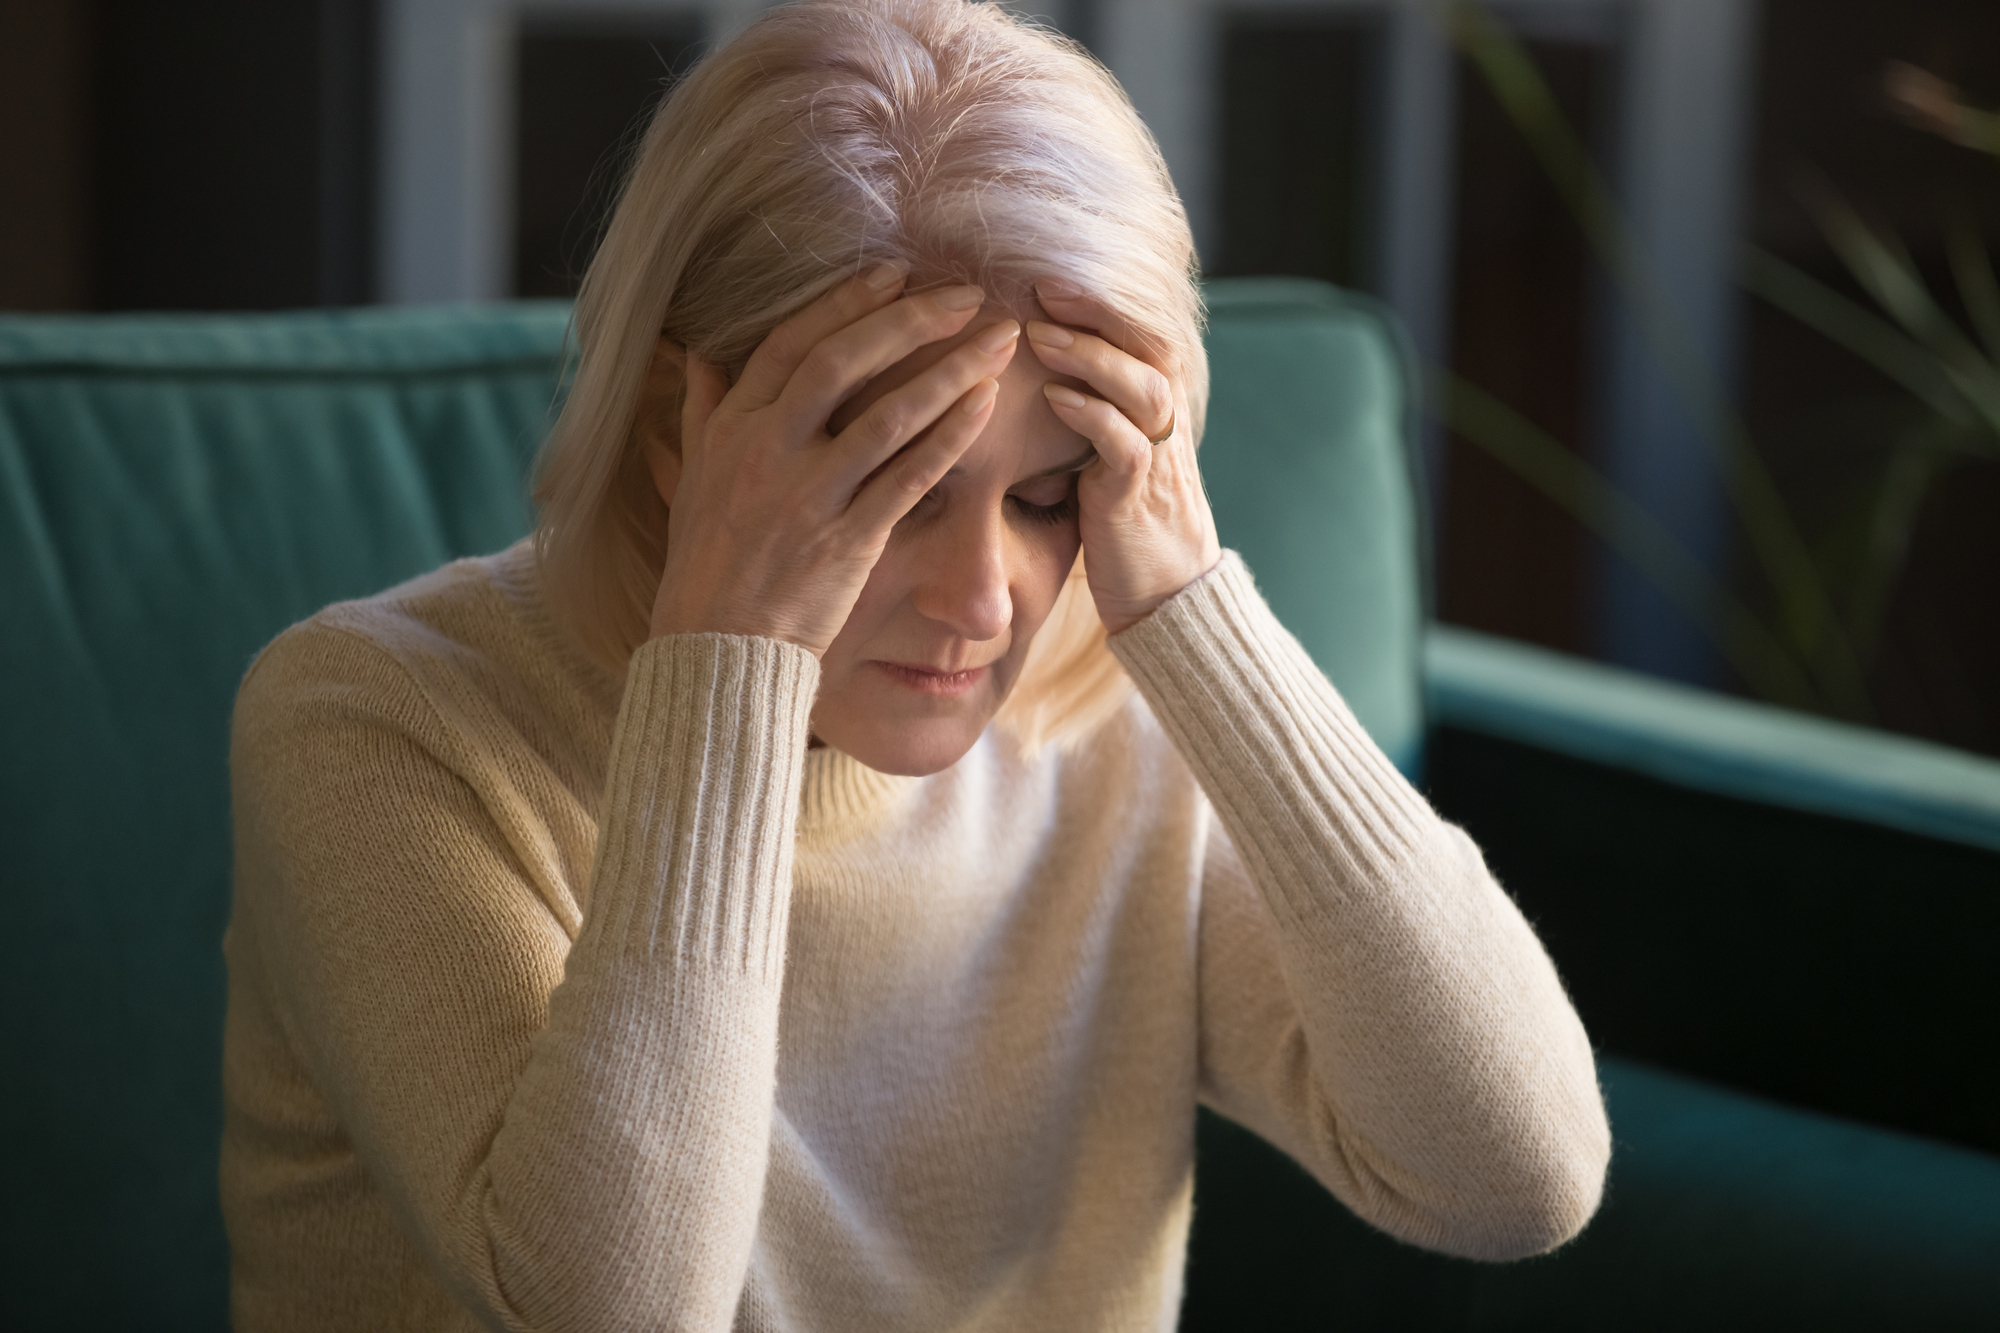 Stressed elderly woman coping with mental health